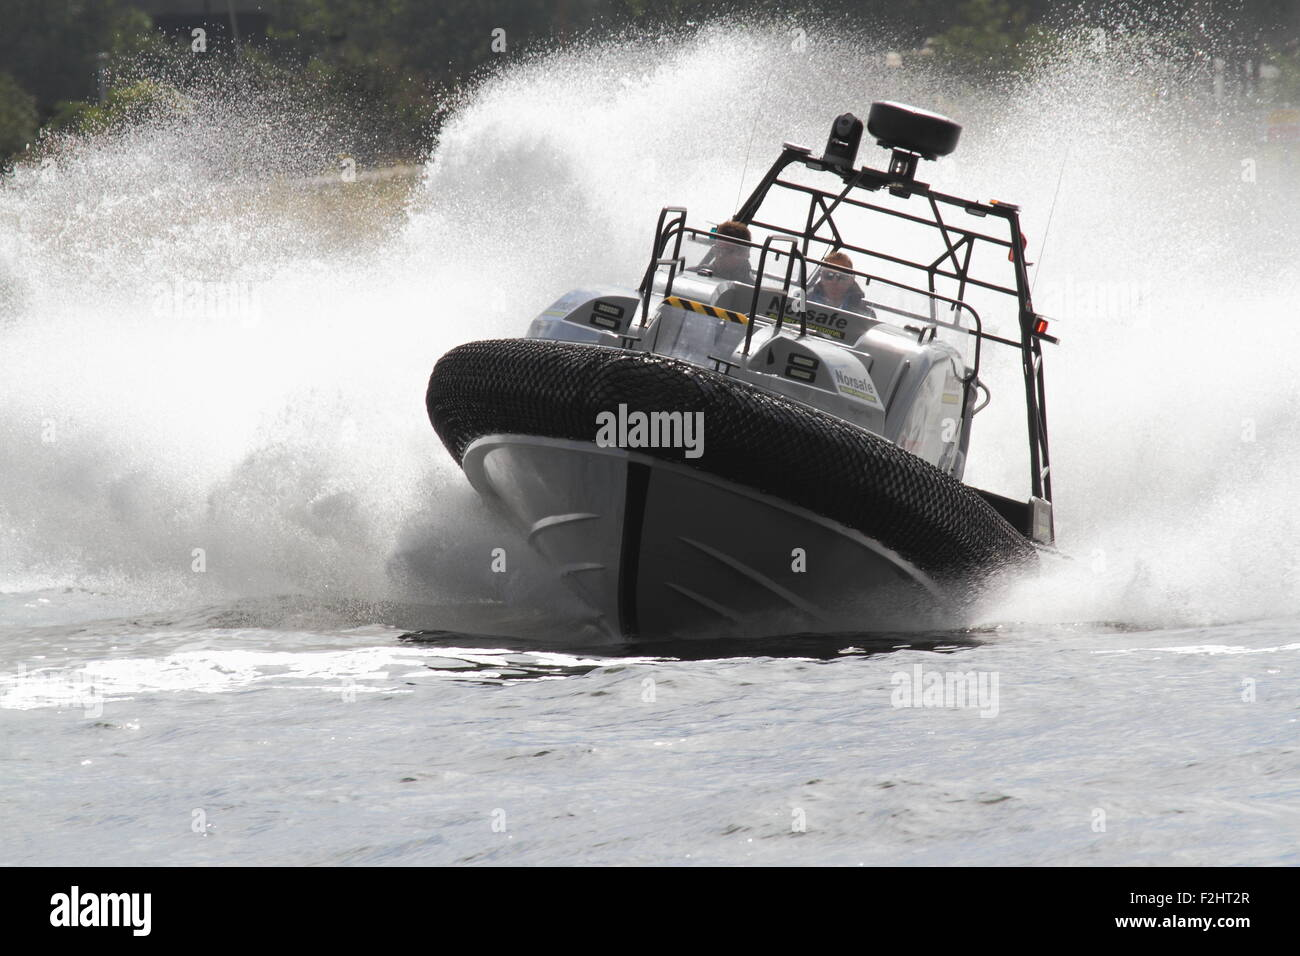 Norsafe Magnum Project Fast Rescue Boat being demonstrated during DSEI at Excel London in September 2015. - Stock Image